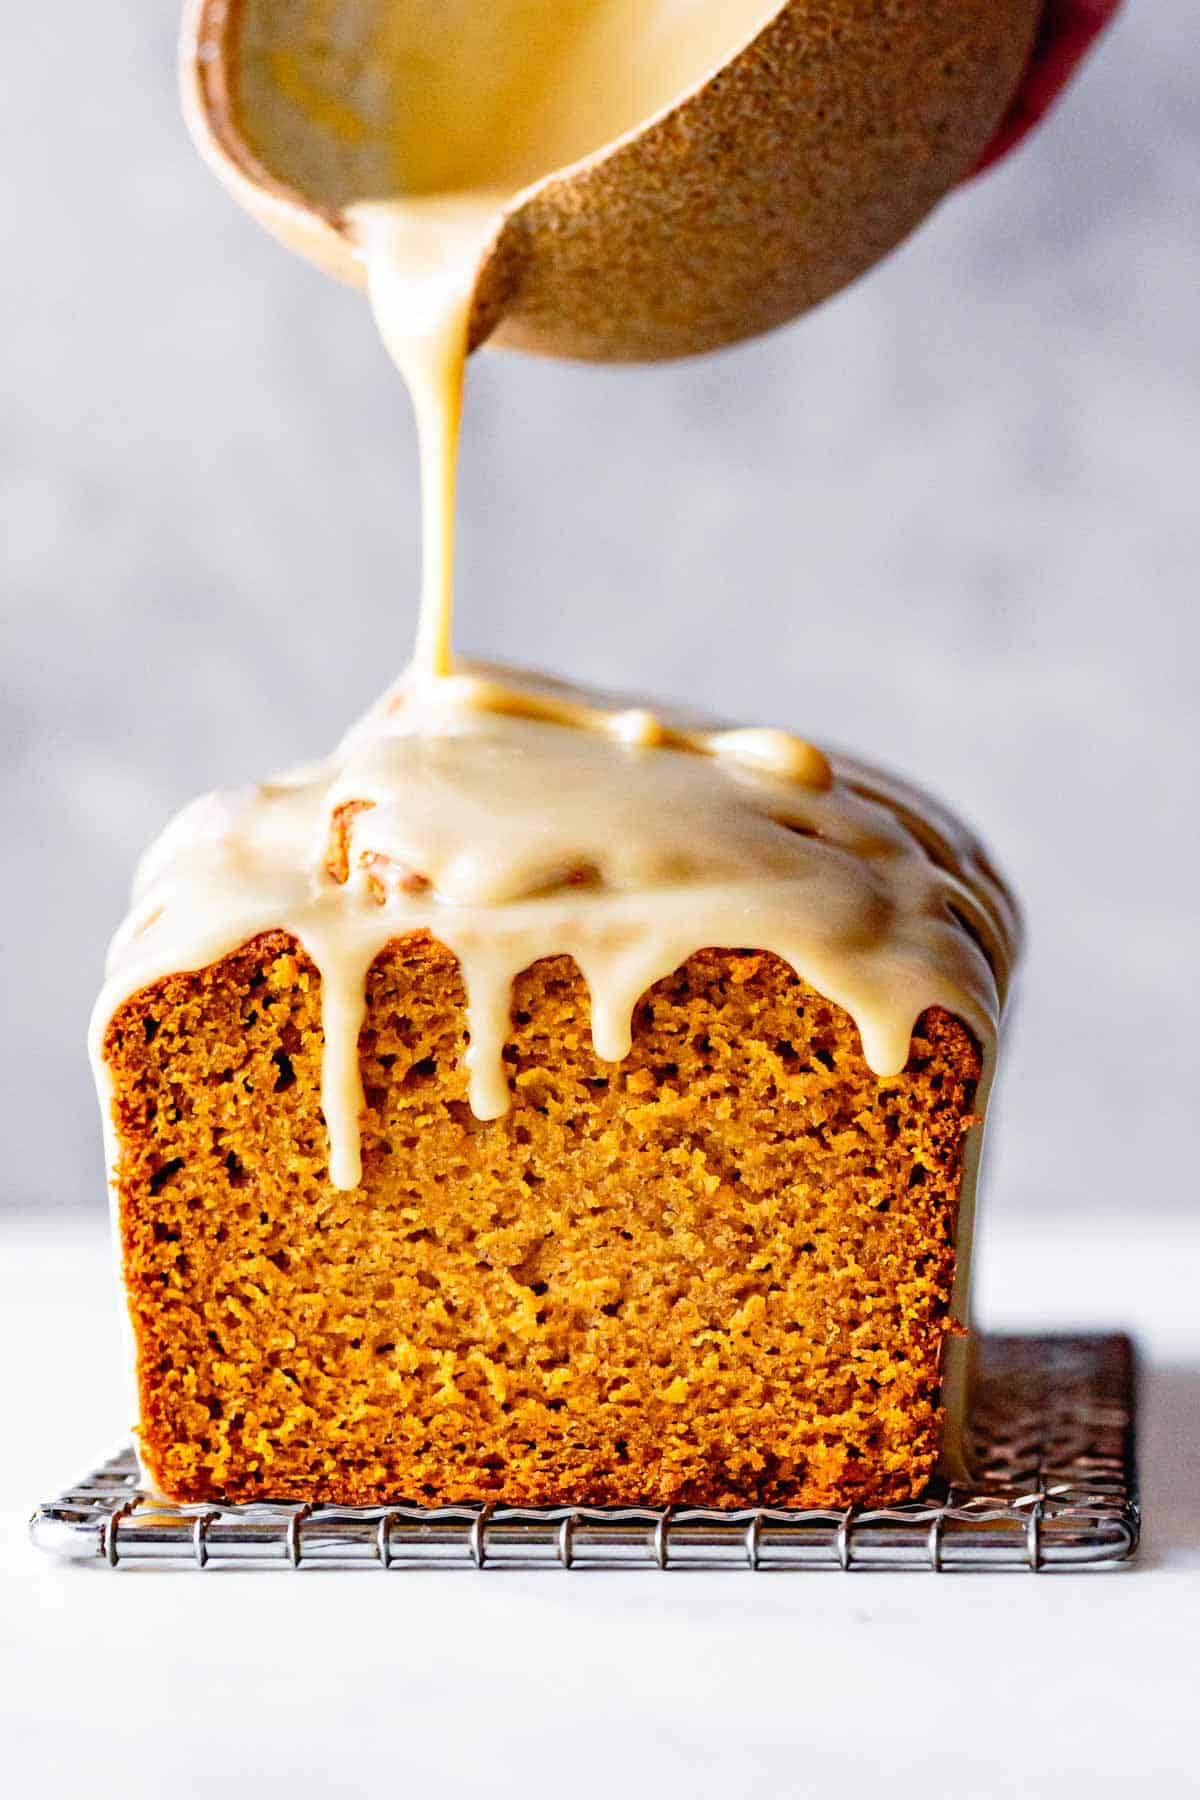 Pouring maple syrup icing on gluten-free dairy-free pumpkin bread